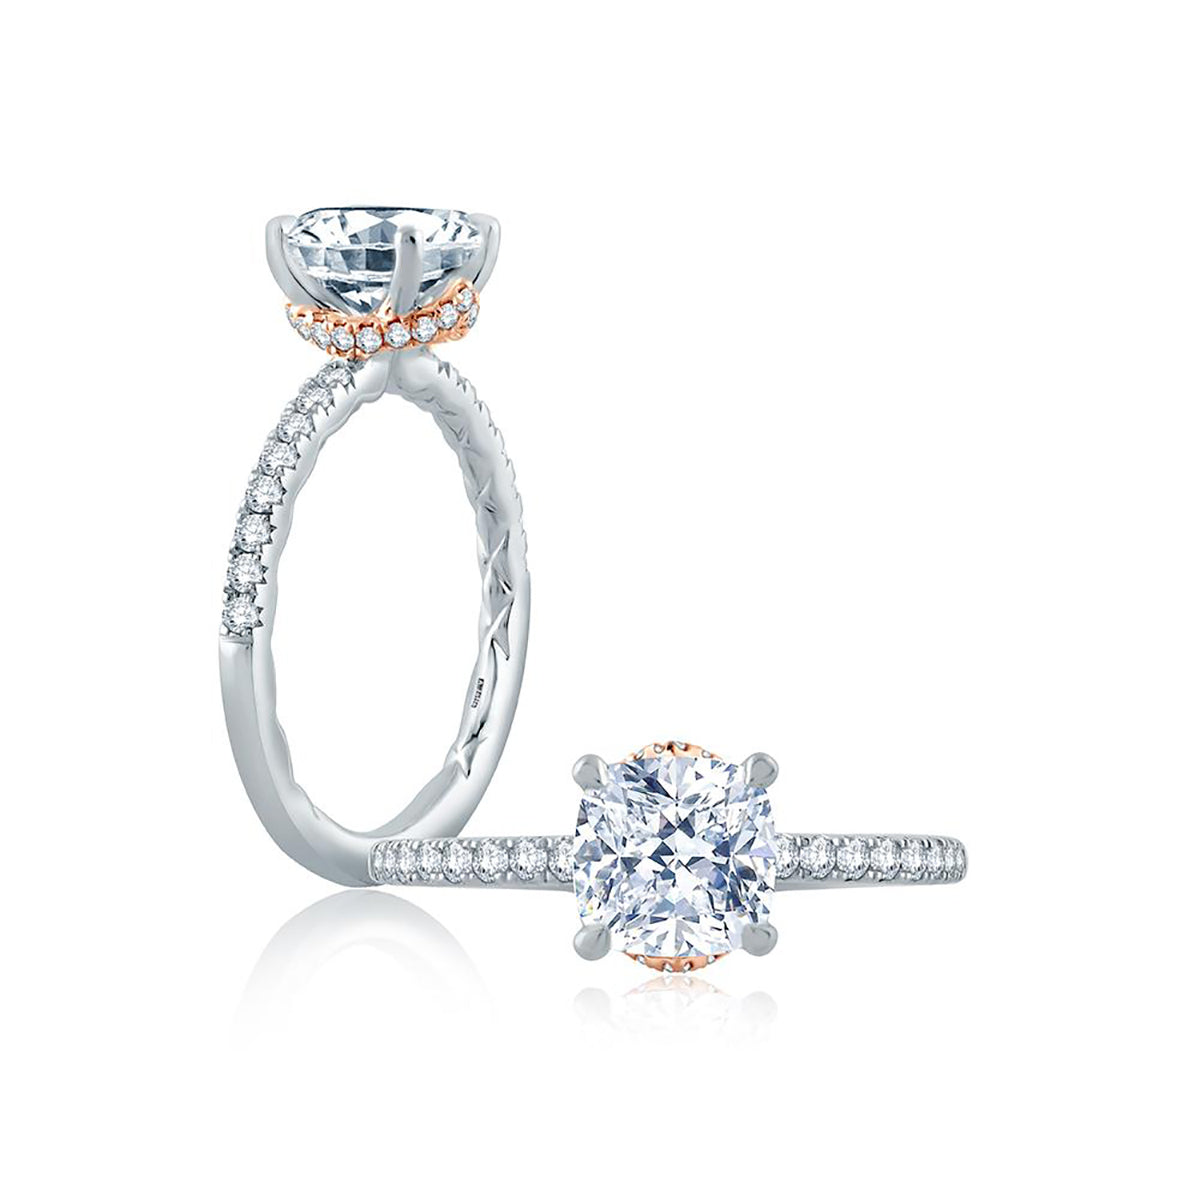 A.Jaffe Delicate Cushion Solitaire with Belted Gallery Detail Engagement Ring ME2171Q/179